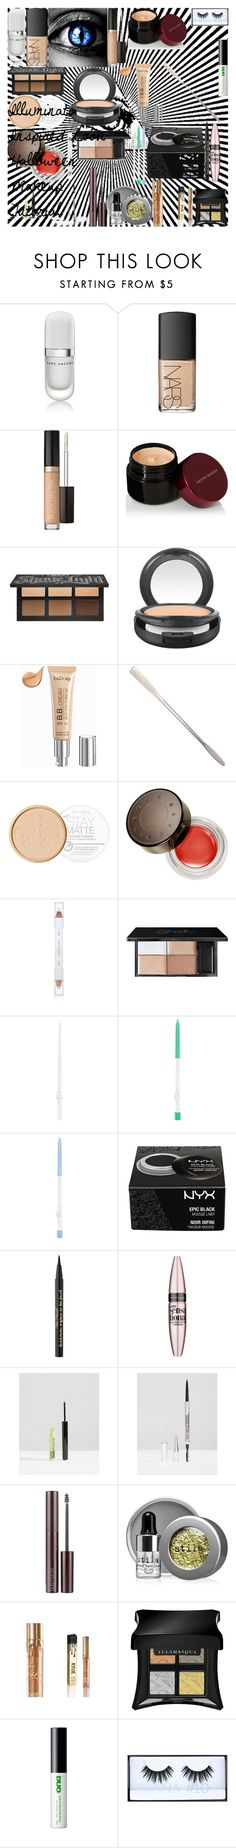 """Illuminati Inspired Look ♡ Halloween Makeup Tutorial"" by oroartye-1 on Polyvore featuring beauty, Marc Jacobs, NARS Cosmetics, Too Faced Cosmetics, Kevyn Aucoin, Kat Von D, MAC Cosmetics, Isadora, Rimmel and Becca"